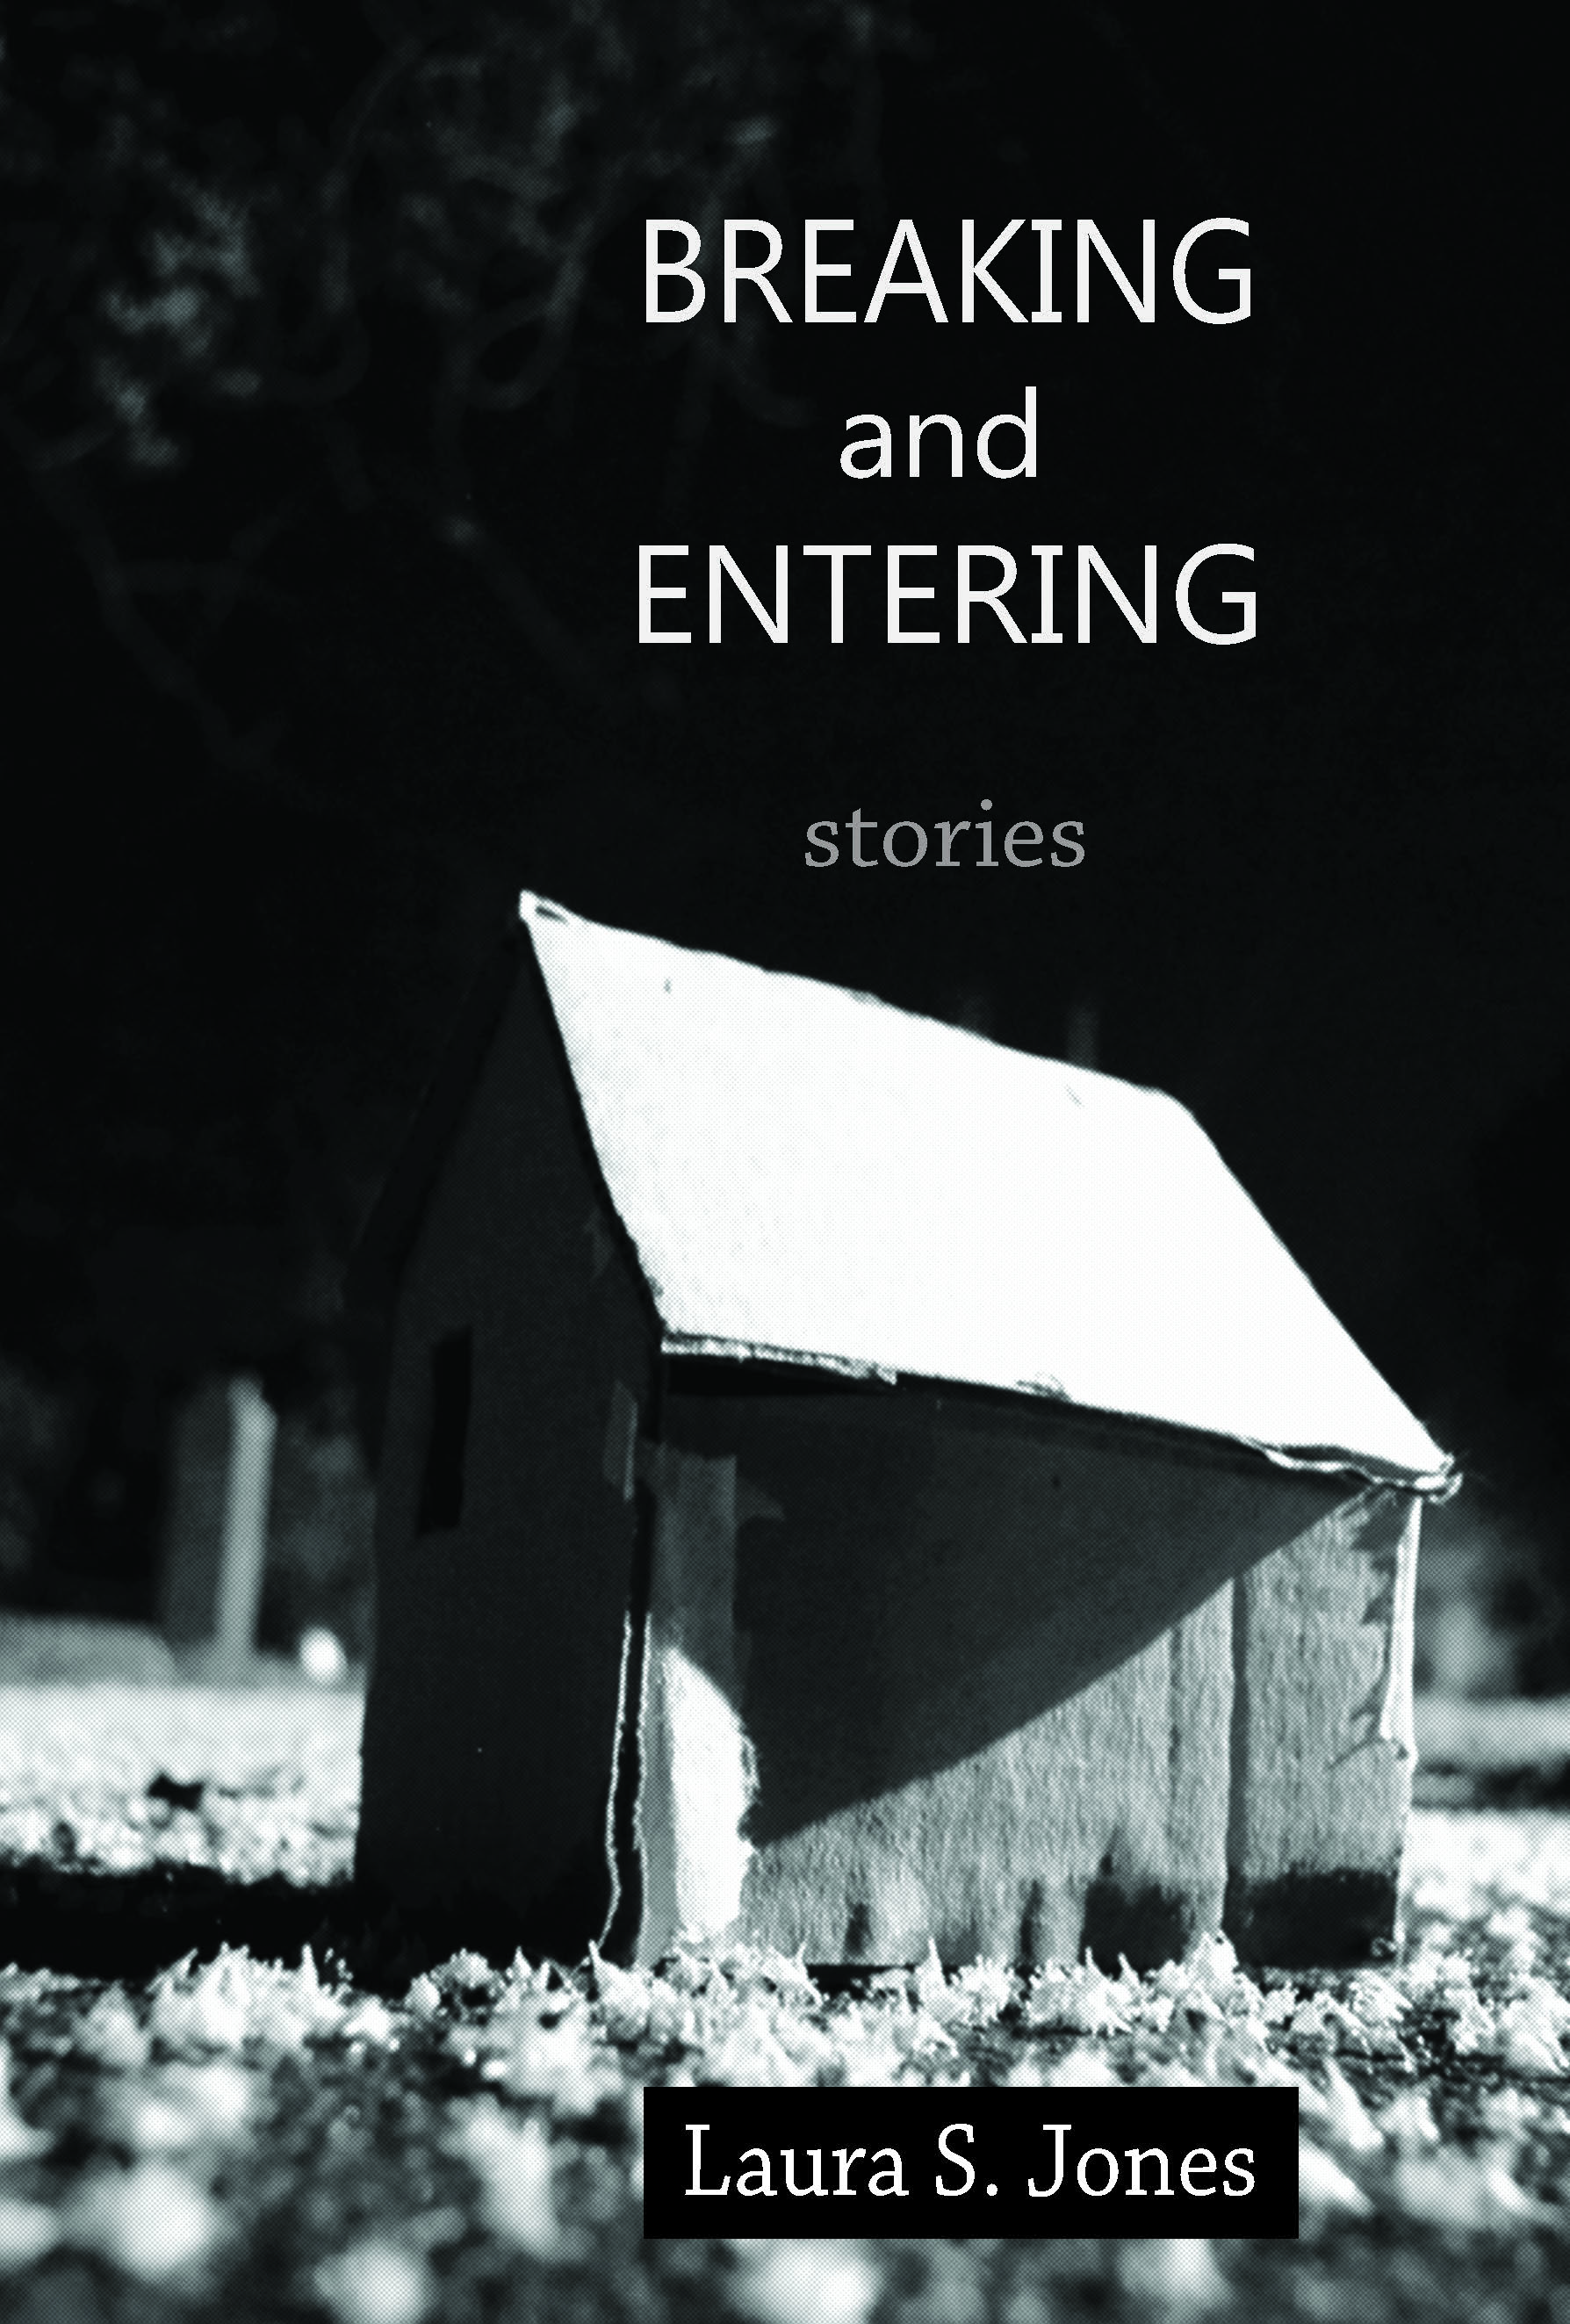 Breaking and Entering - a debut story story collection from Laura S. Jones